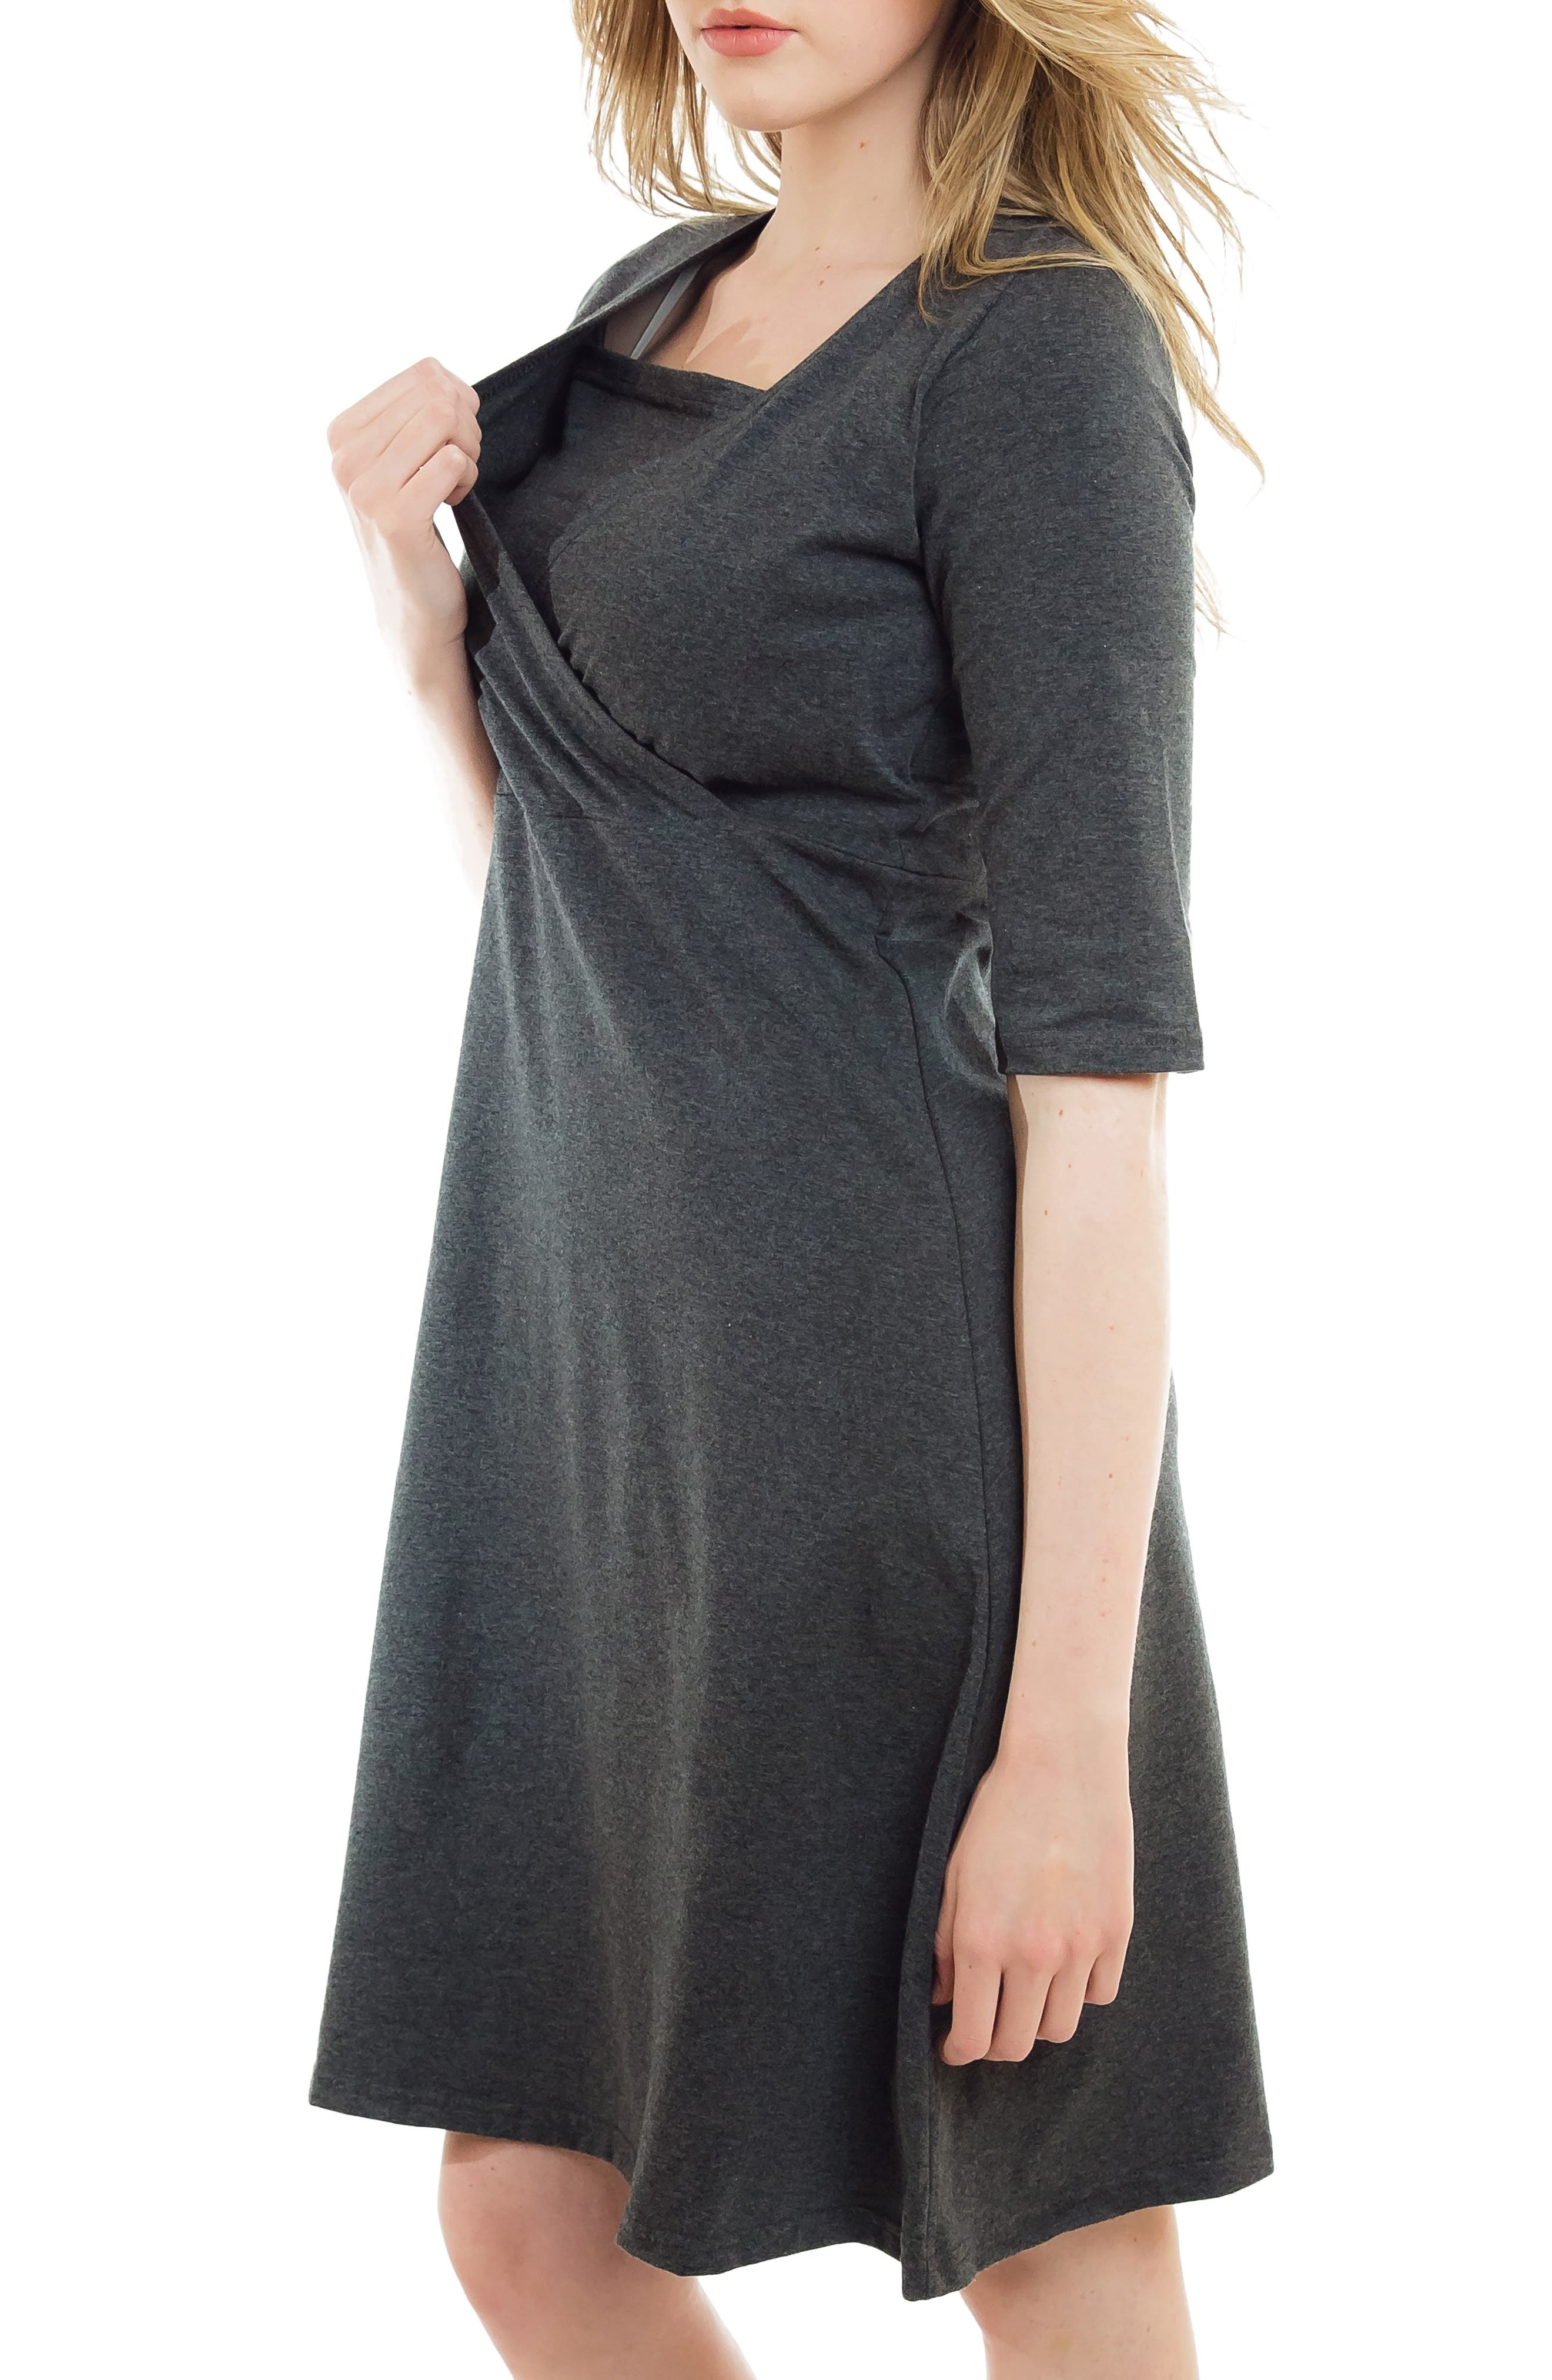 Crossover Maternity/Nursing Dress,                             Alternate thumbnail 3, color,                             HEATHER CHARCOAL